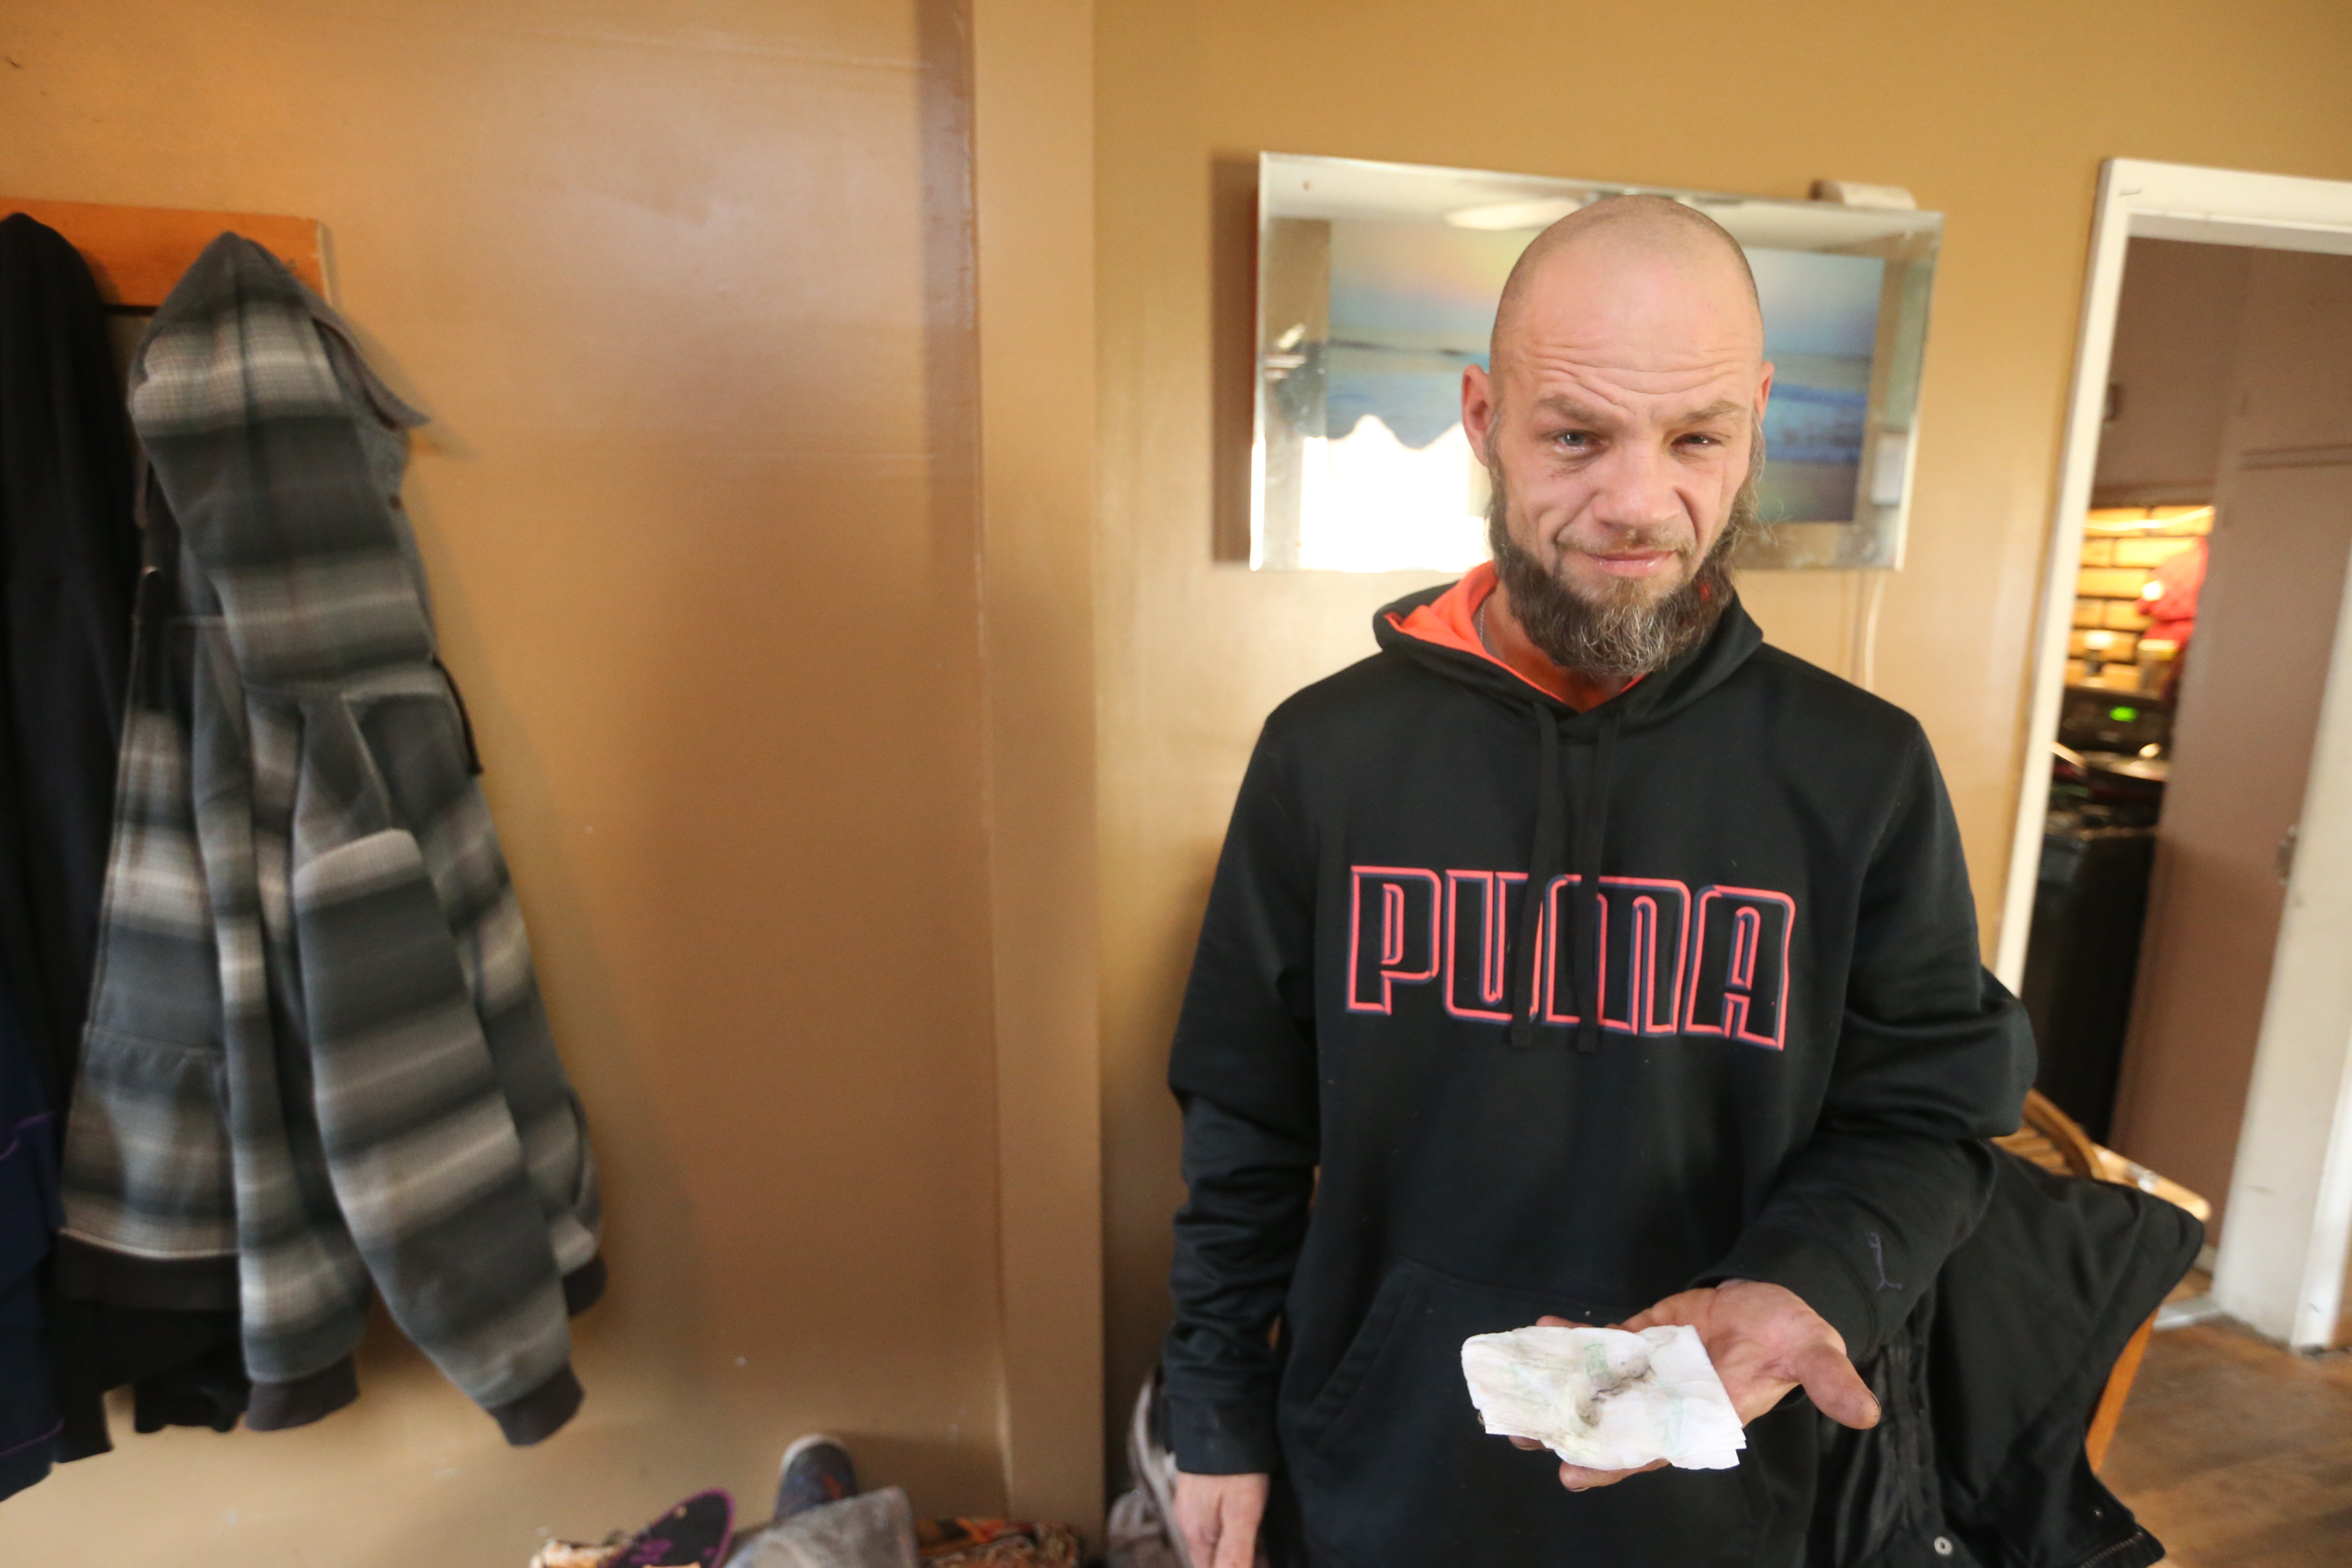 """Clarence """"Butch"""" Yeager from the Bethlehem Park neighborhood has been cleaning up for over a week inside his home and shows off what he just wiped from the walls, after a fire at the former Bethlehem Steel Plant , in Lackawanna, N.Y., on Wednesday, Nov. 23, 2016 he shows soot he has been wiping from walls in his home. (John Hickey/Buffalo News)"""